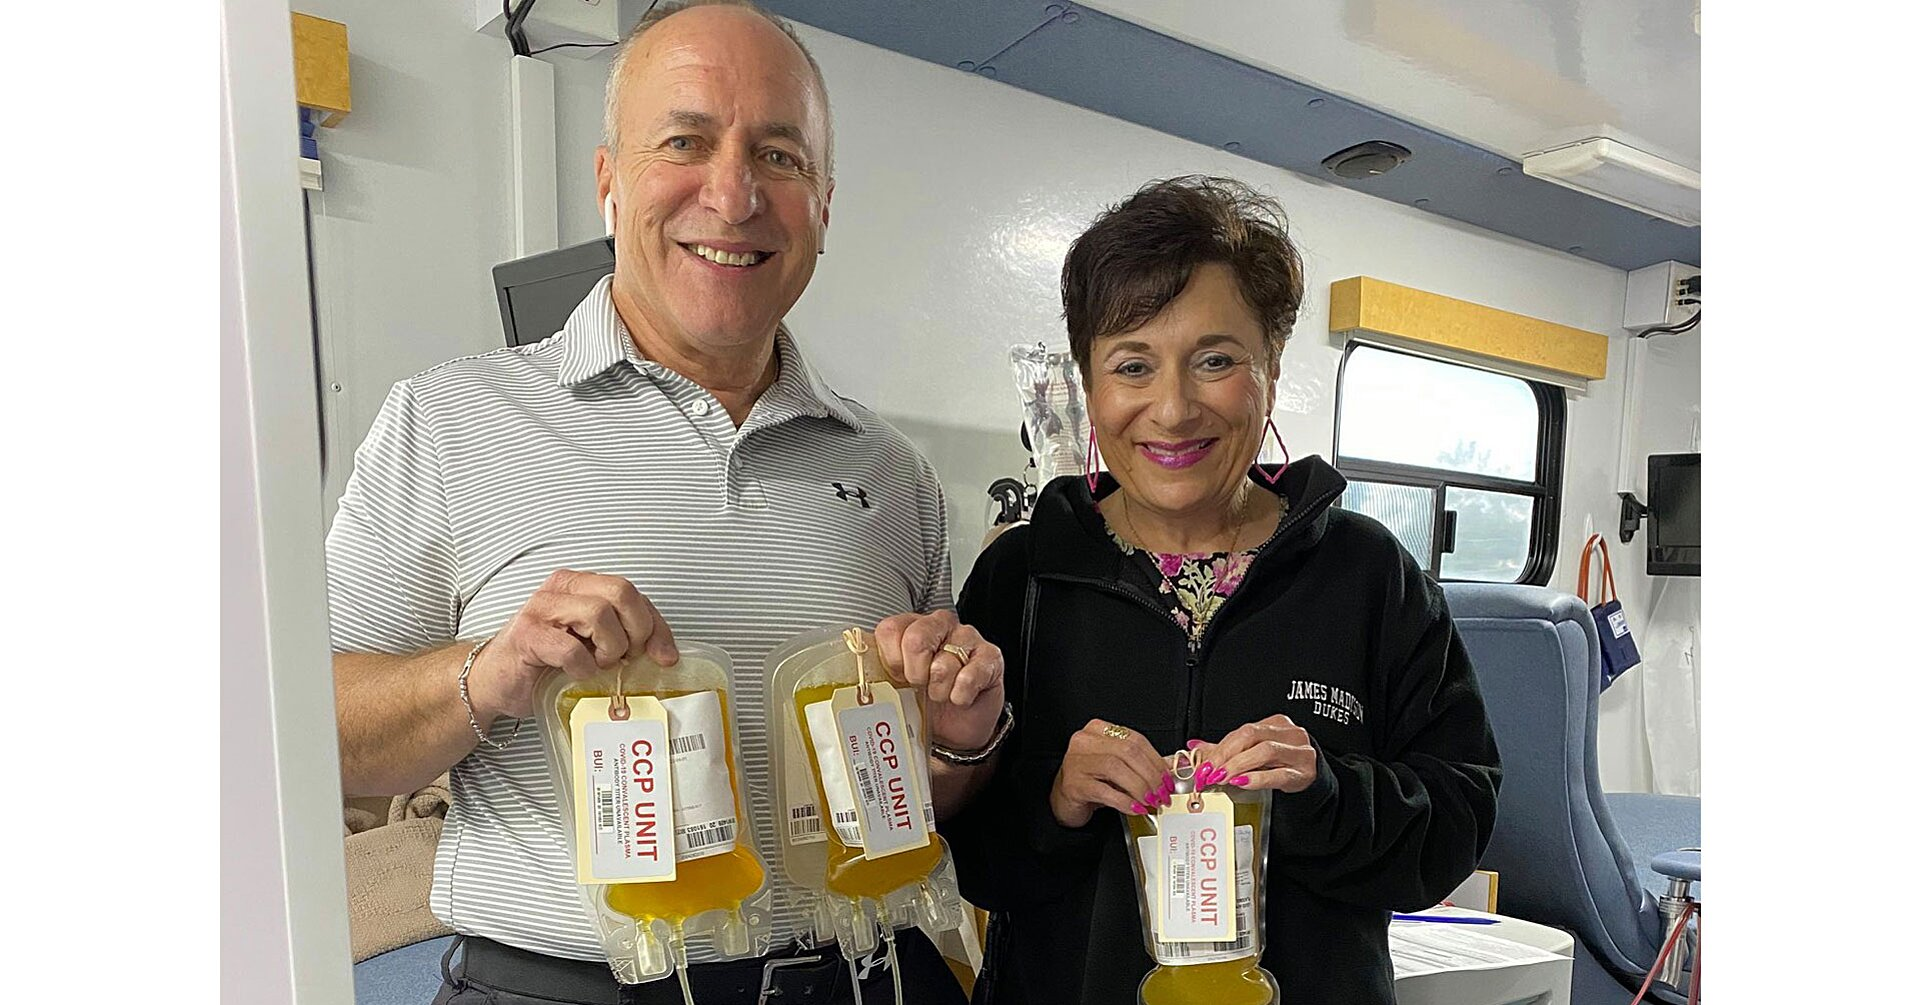 Texas Couple's Plasma Donations Have Helped 71 (and Counting) COVID-19 Patients